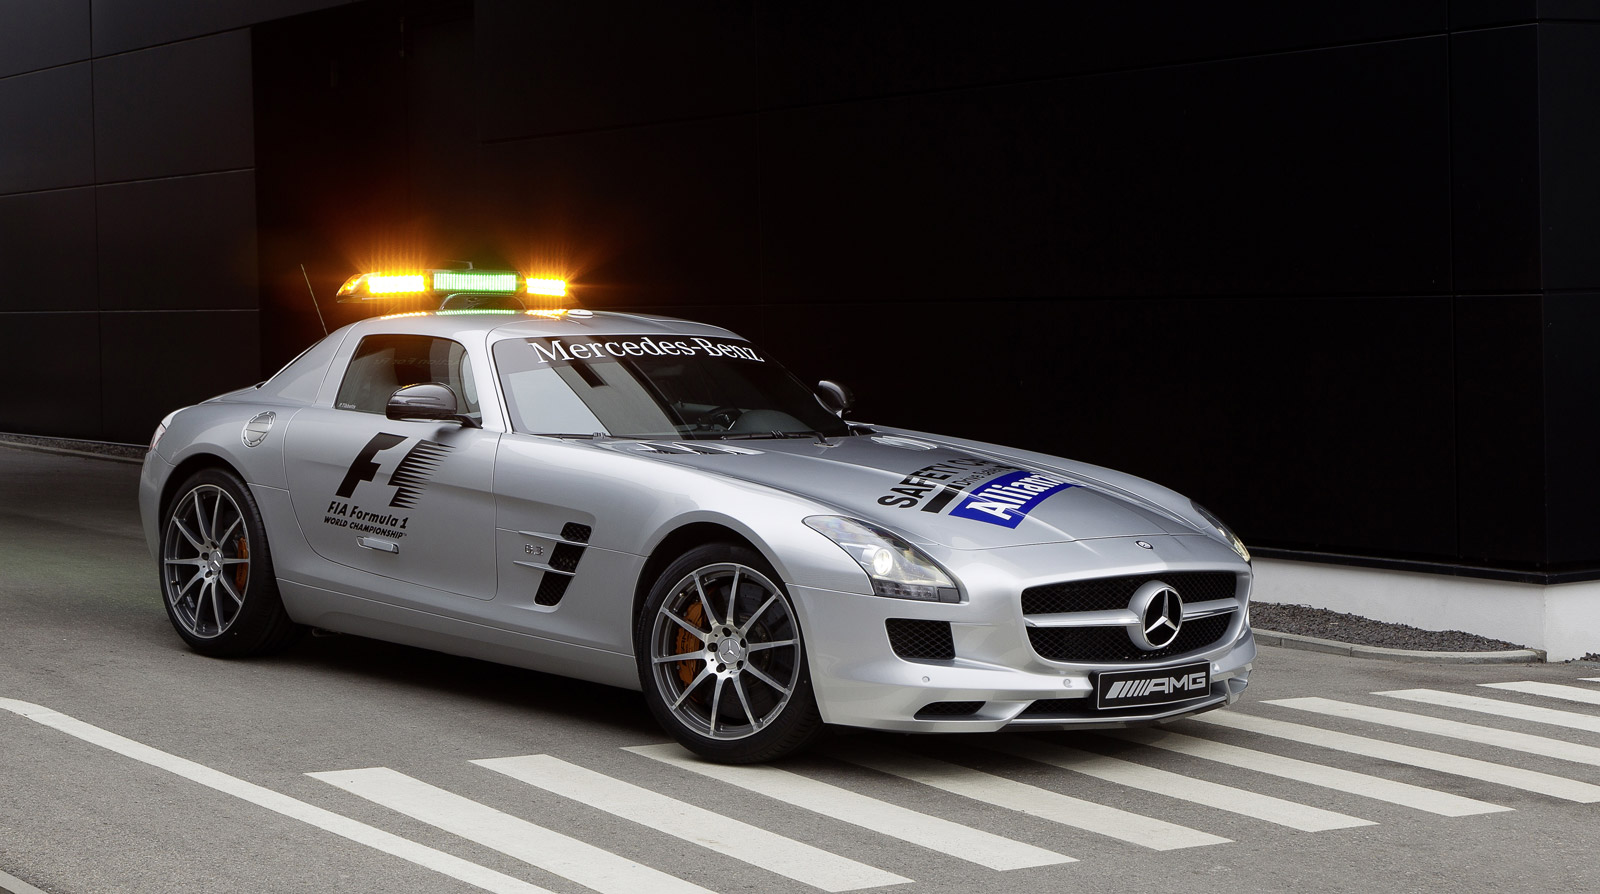 2019 Mercedes Benz SLS AMG photo - 4